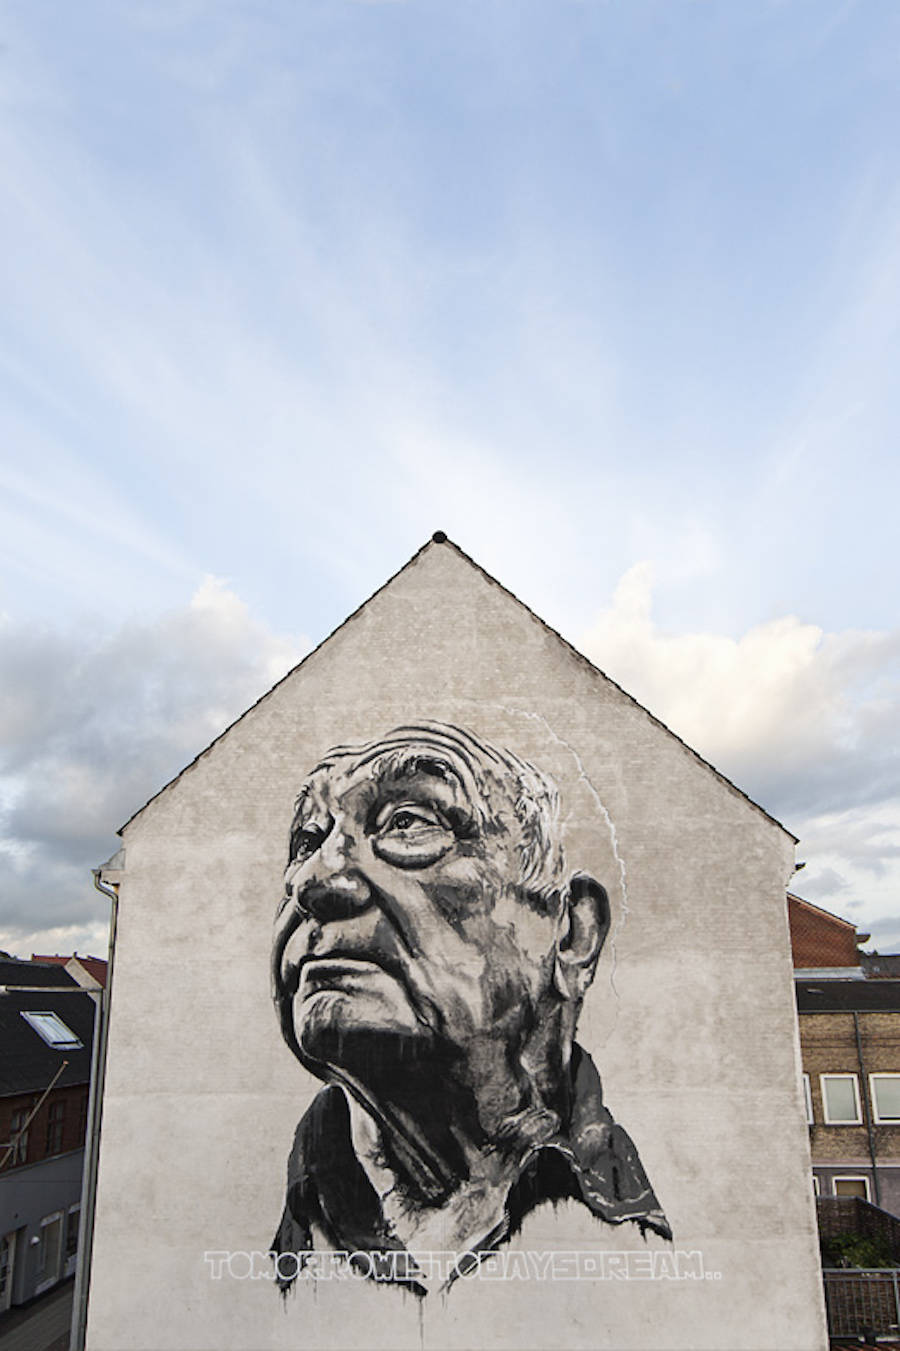 Realistic Giant Portraits on Murals by ECB